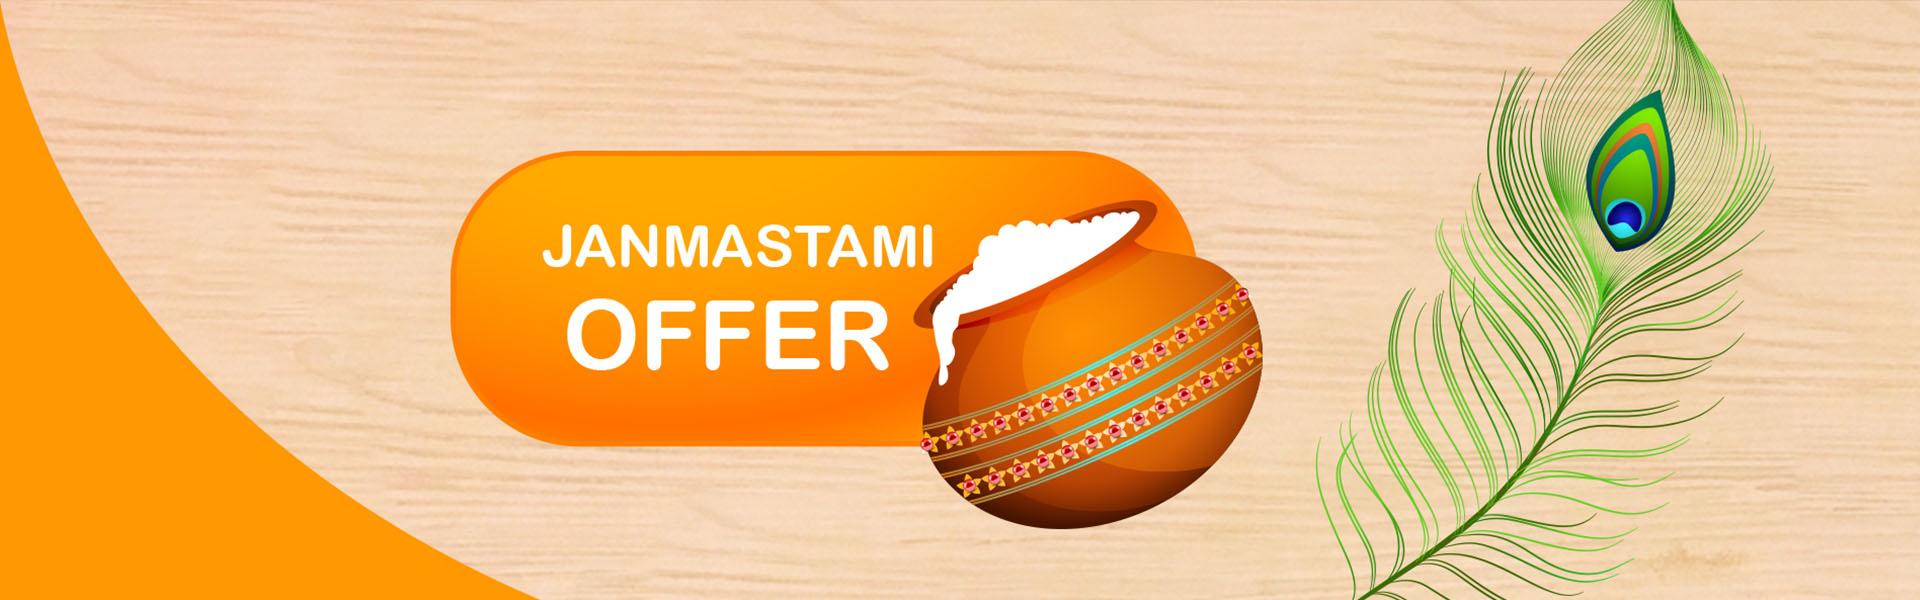 Janmastami offer